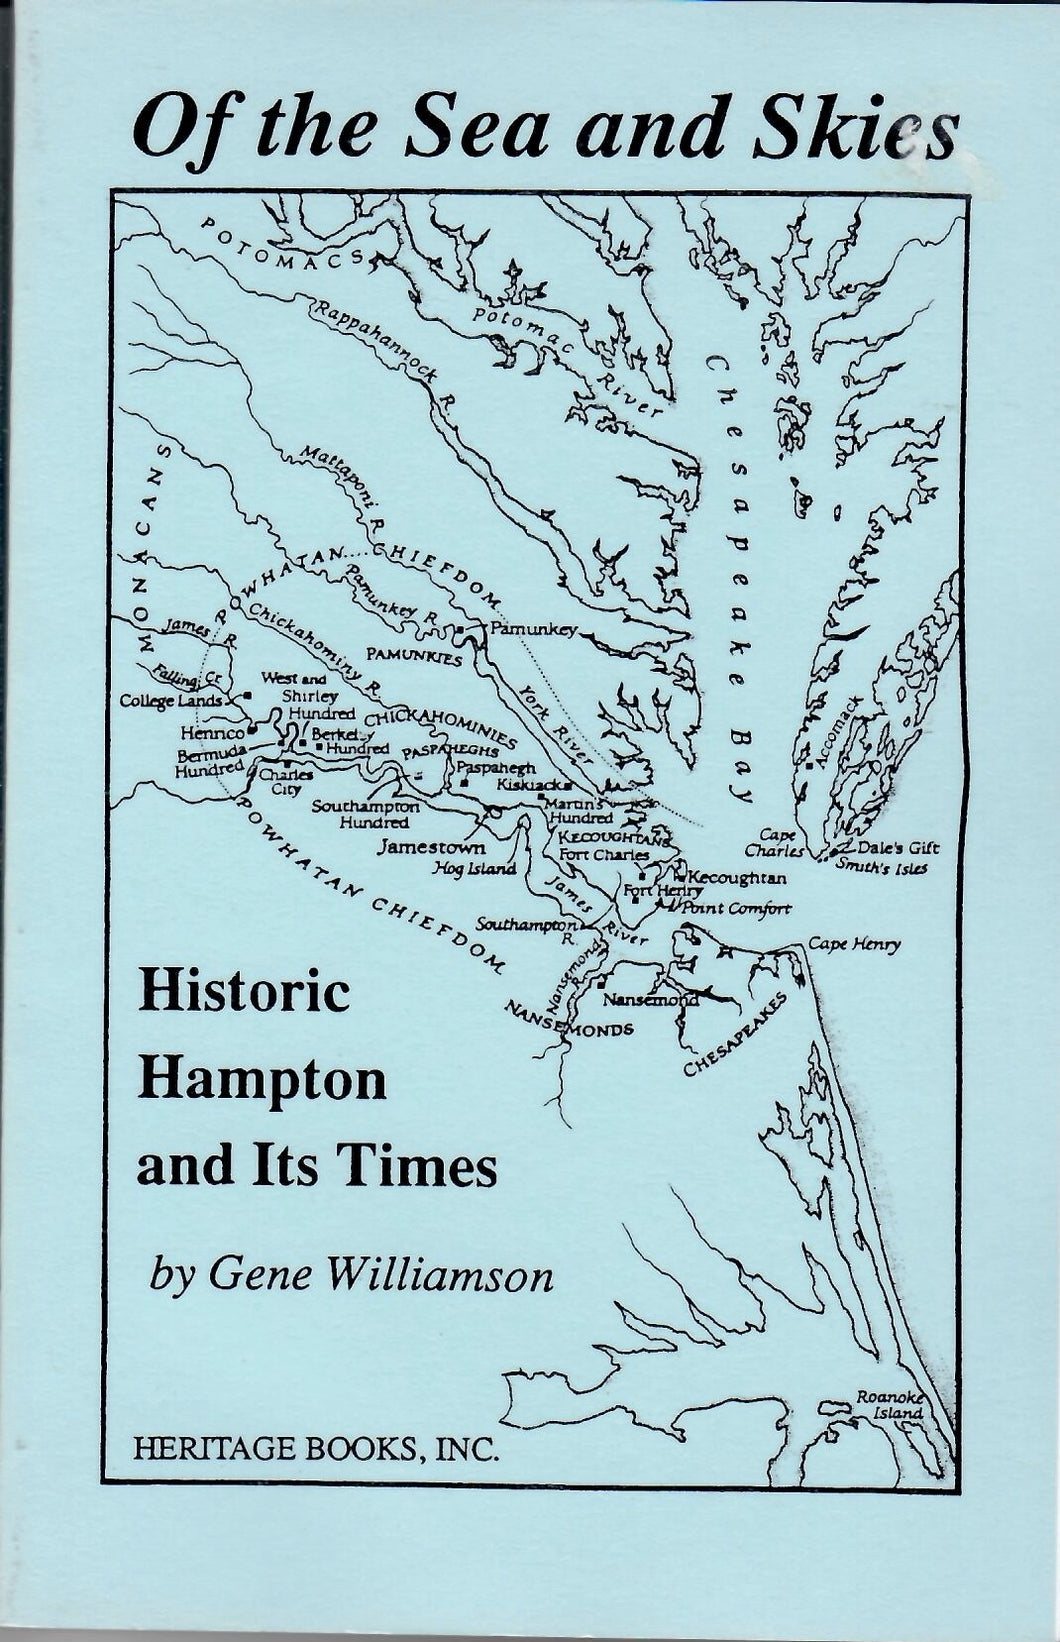 Of The Sea and Skies: Historic Hampton and Its Times